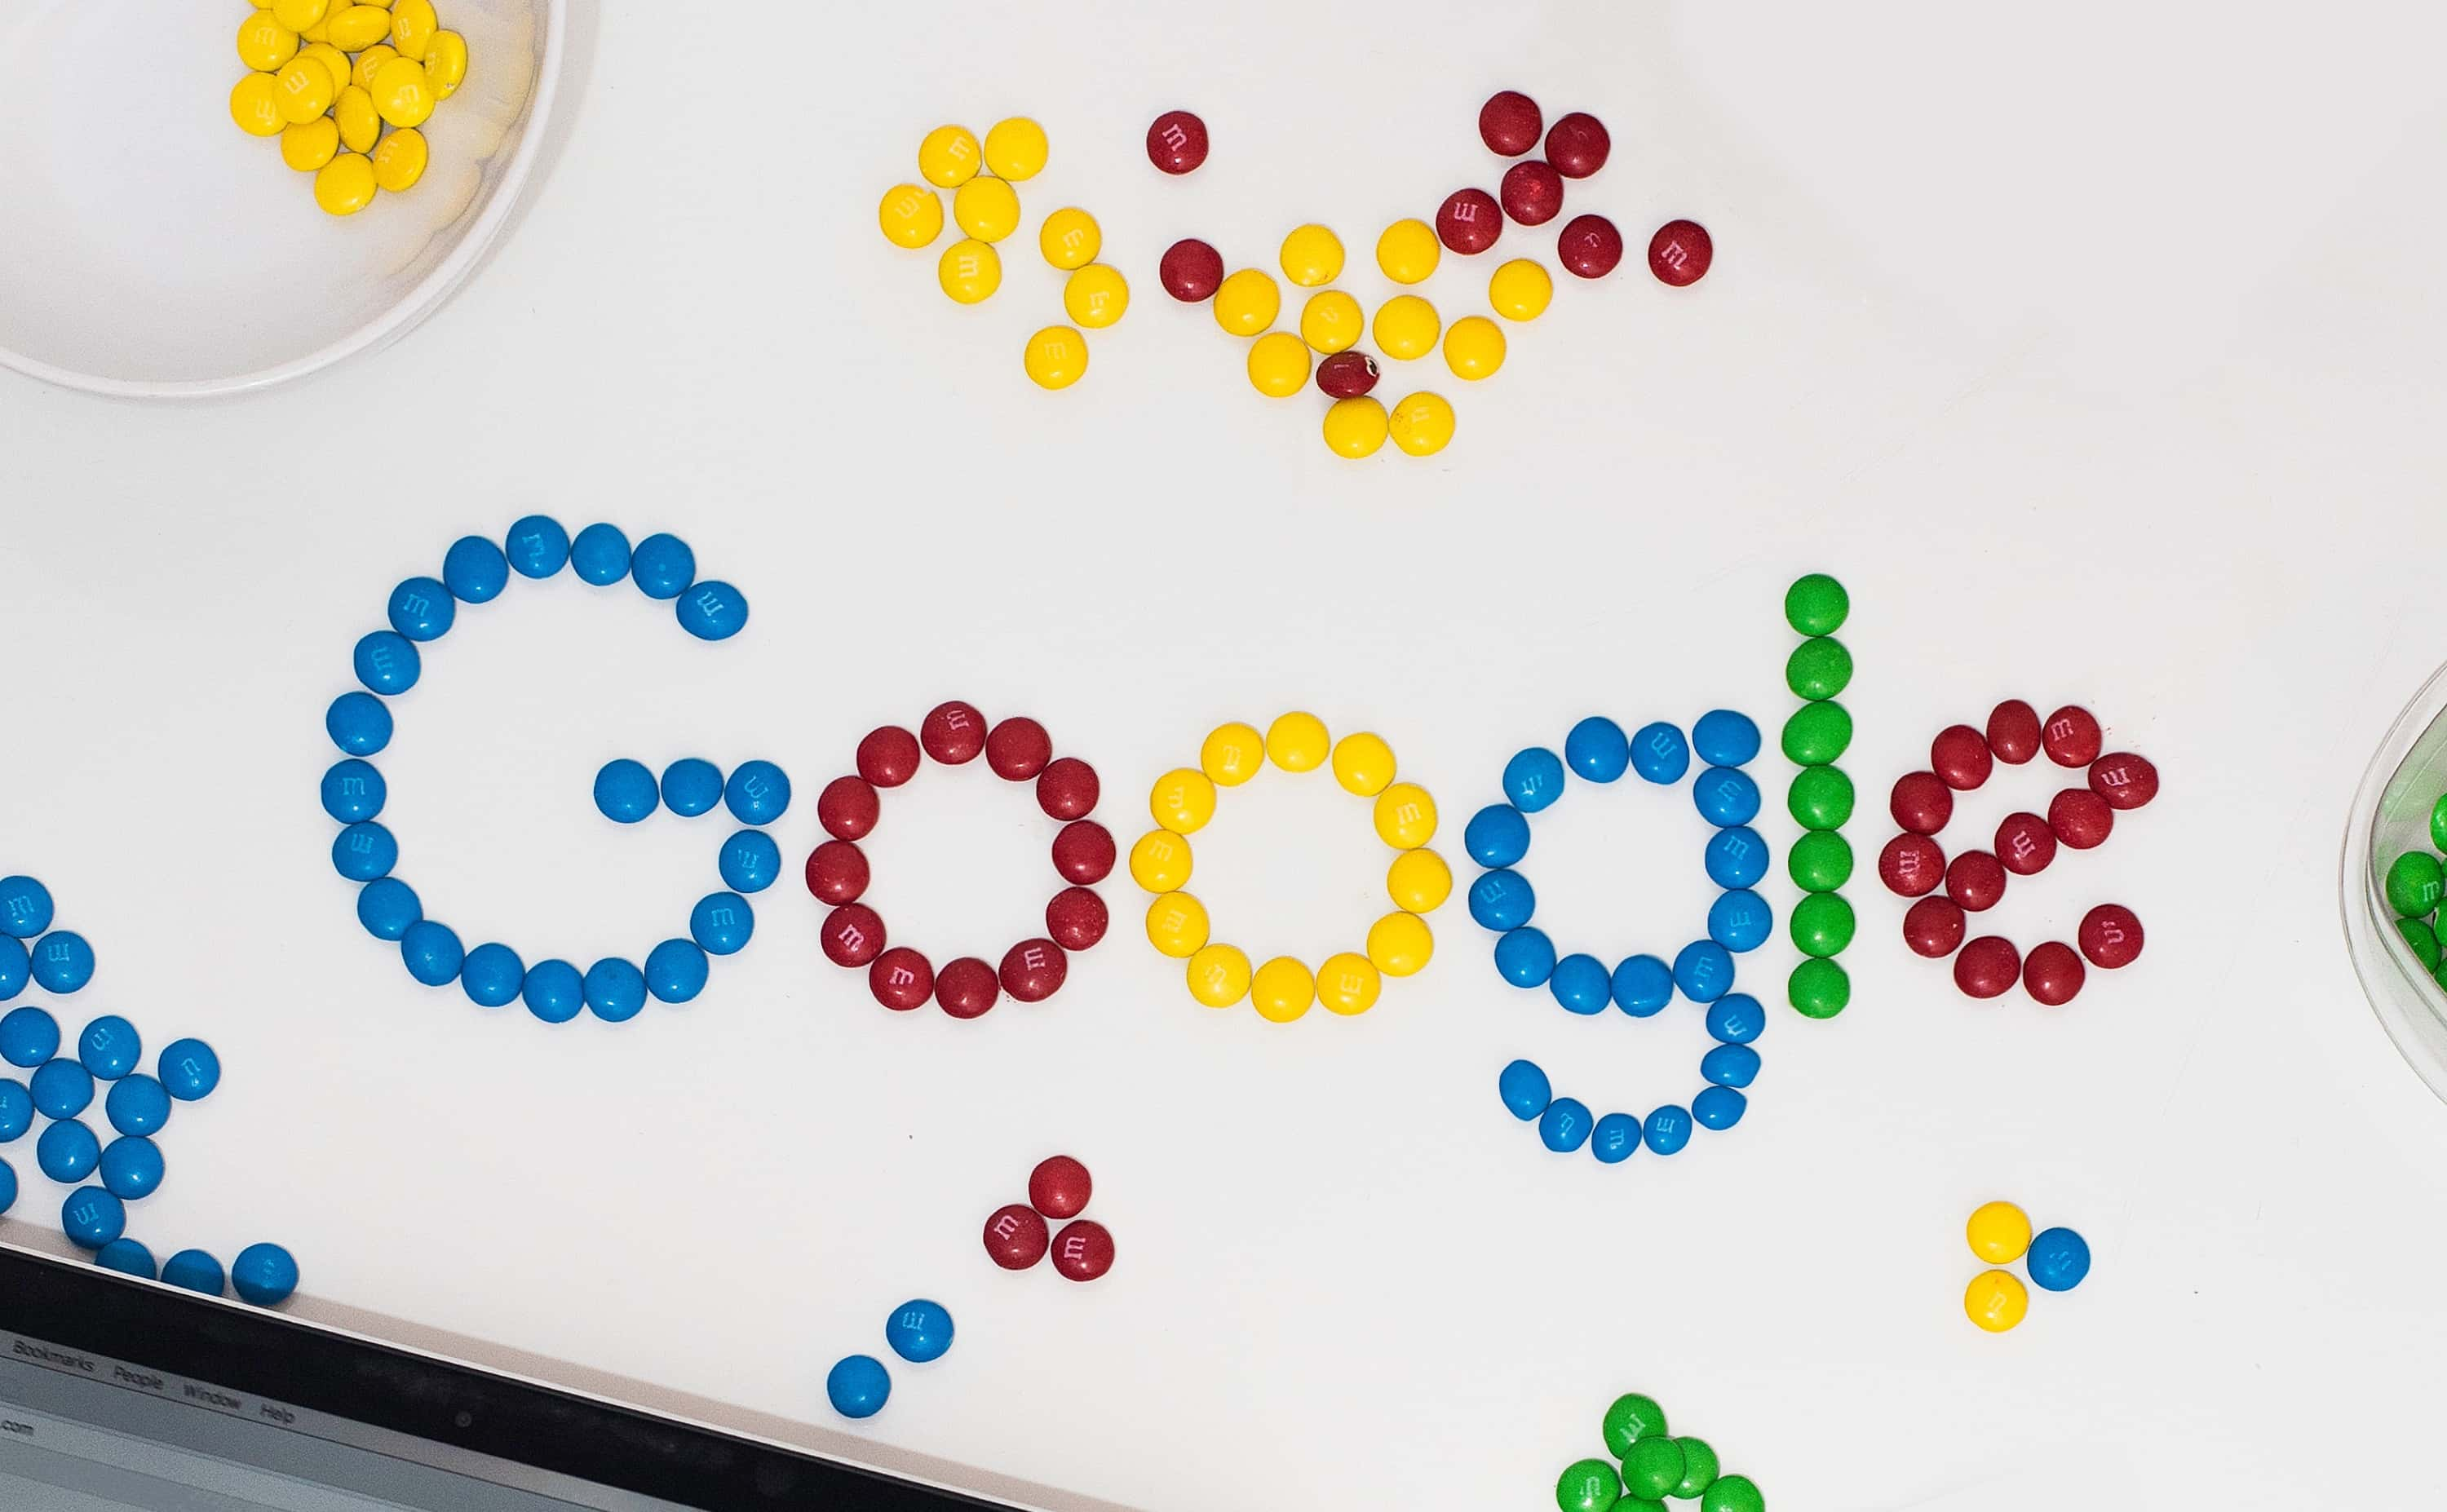 The Google logo spelled with M&Ms.